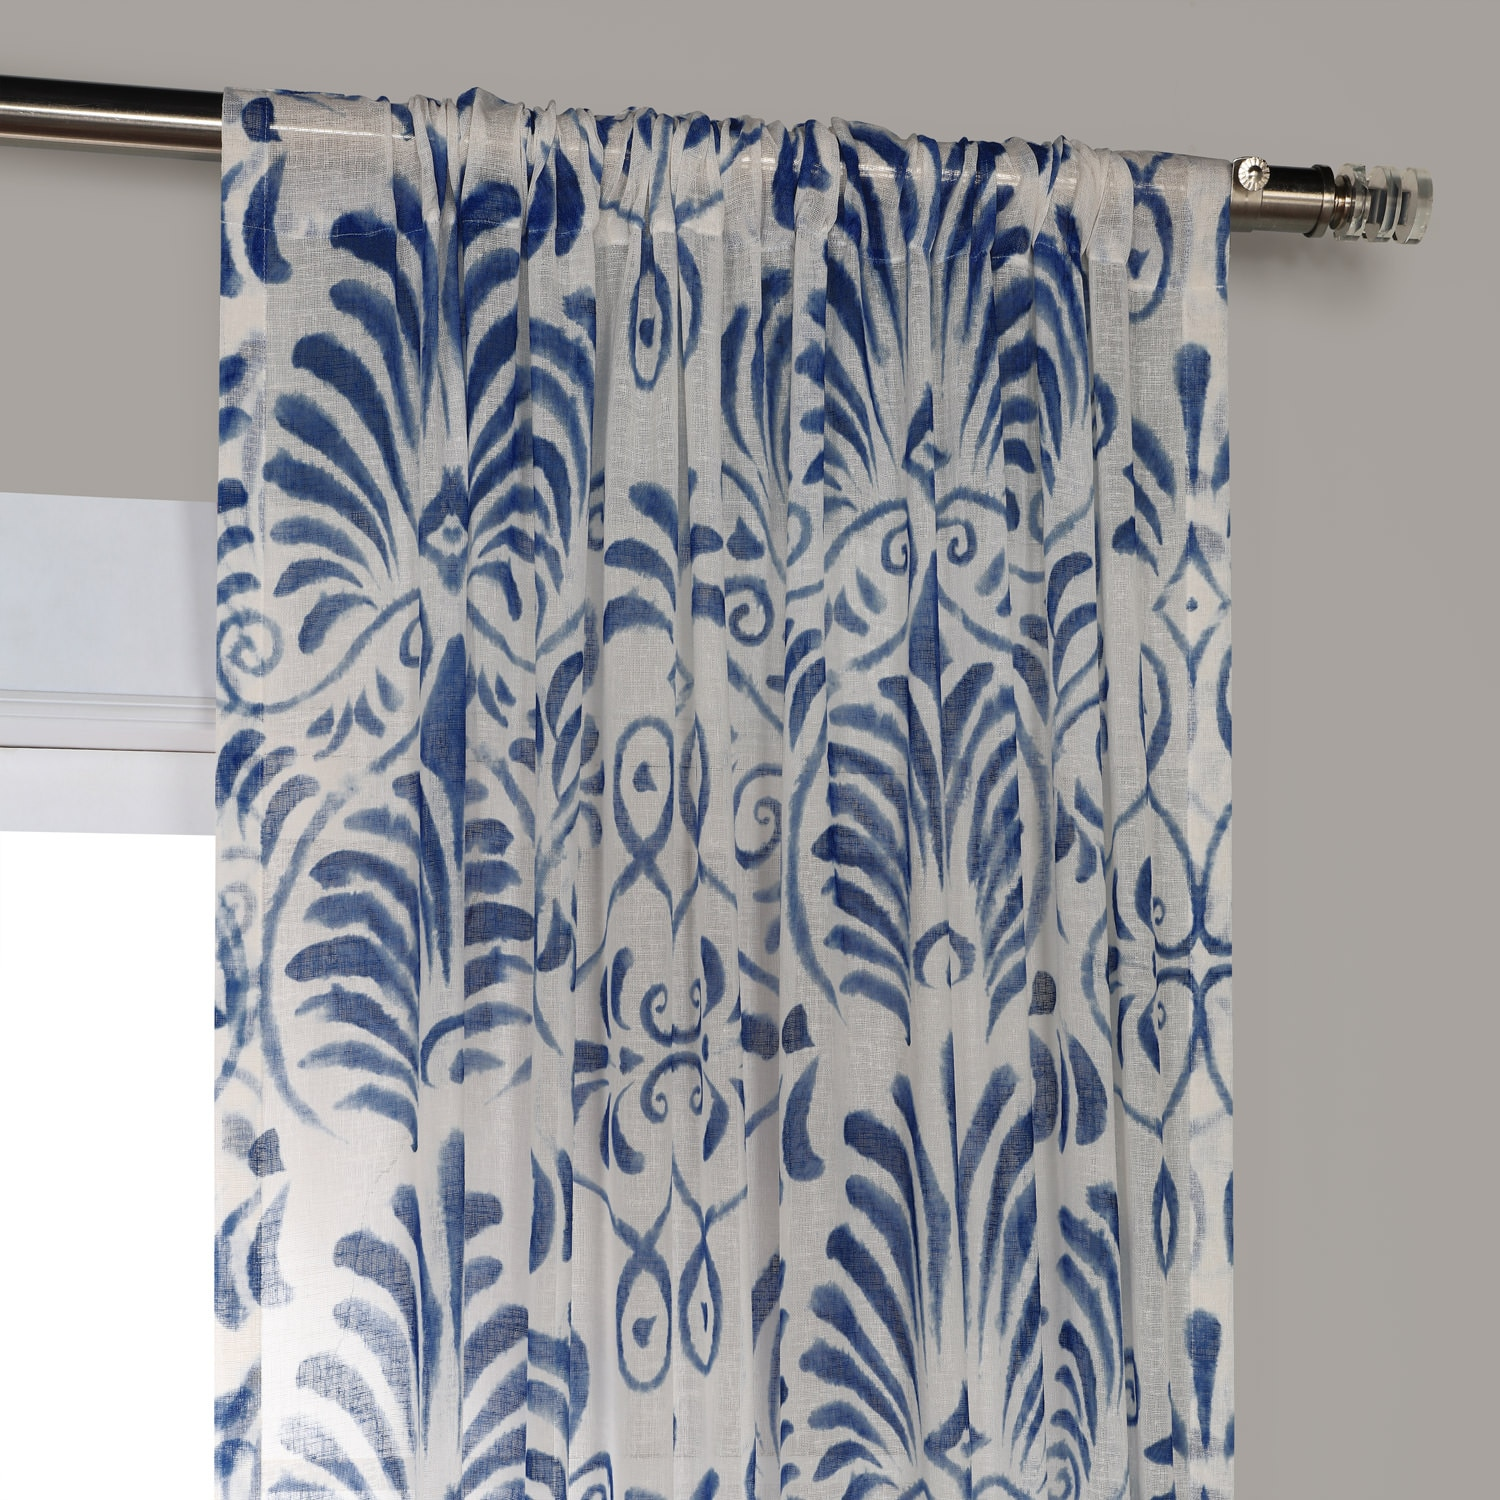 Xenia Blue Printed Faux Linen Sheer Curtain